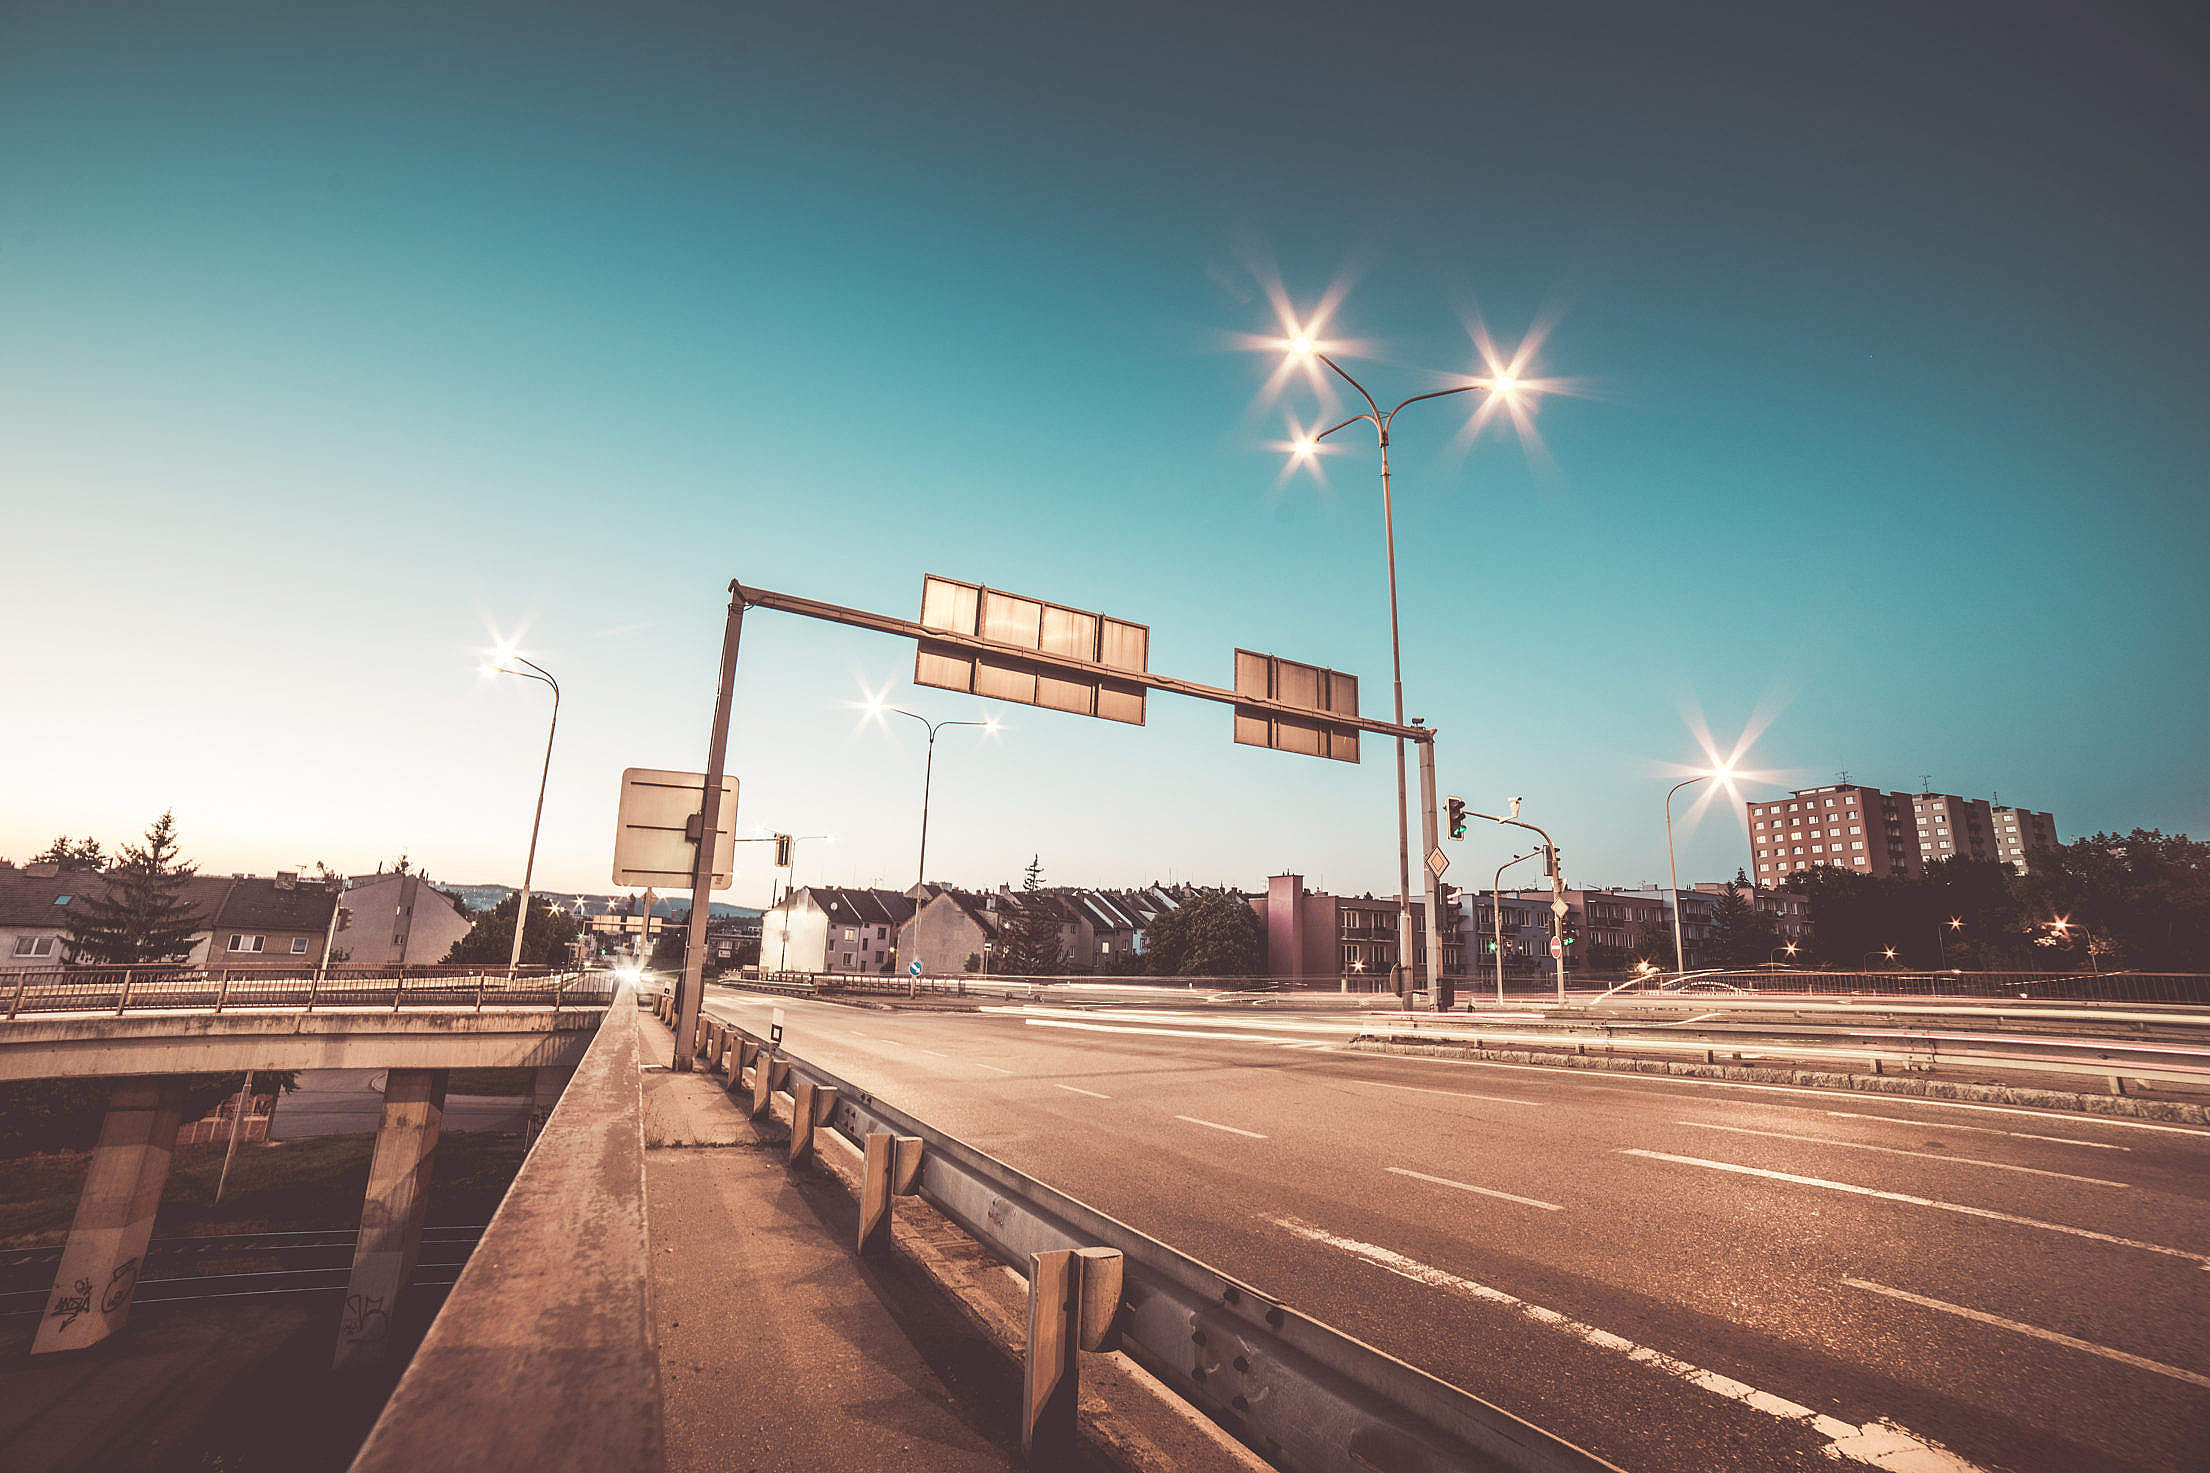 Road Intersection and Traffic Lights #3 Free Stock Photo